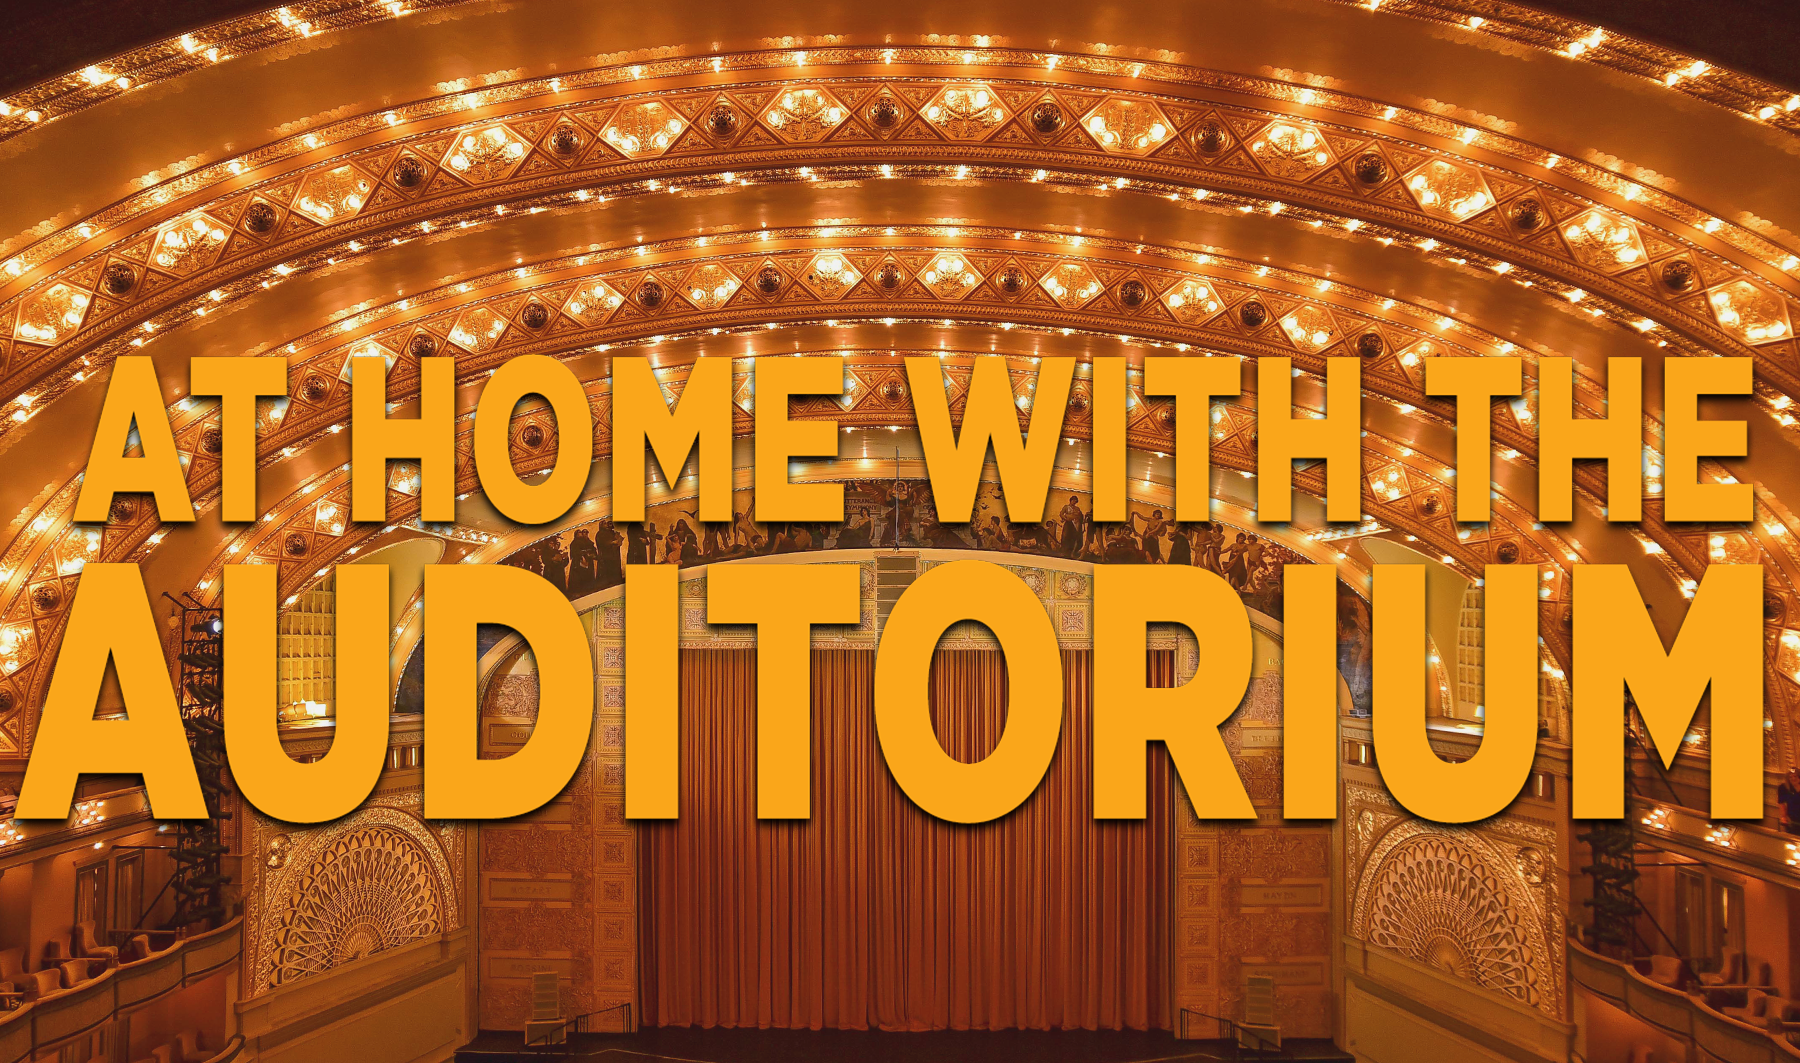 At Home With the Auditorium: Joan Curto